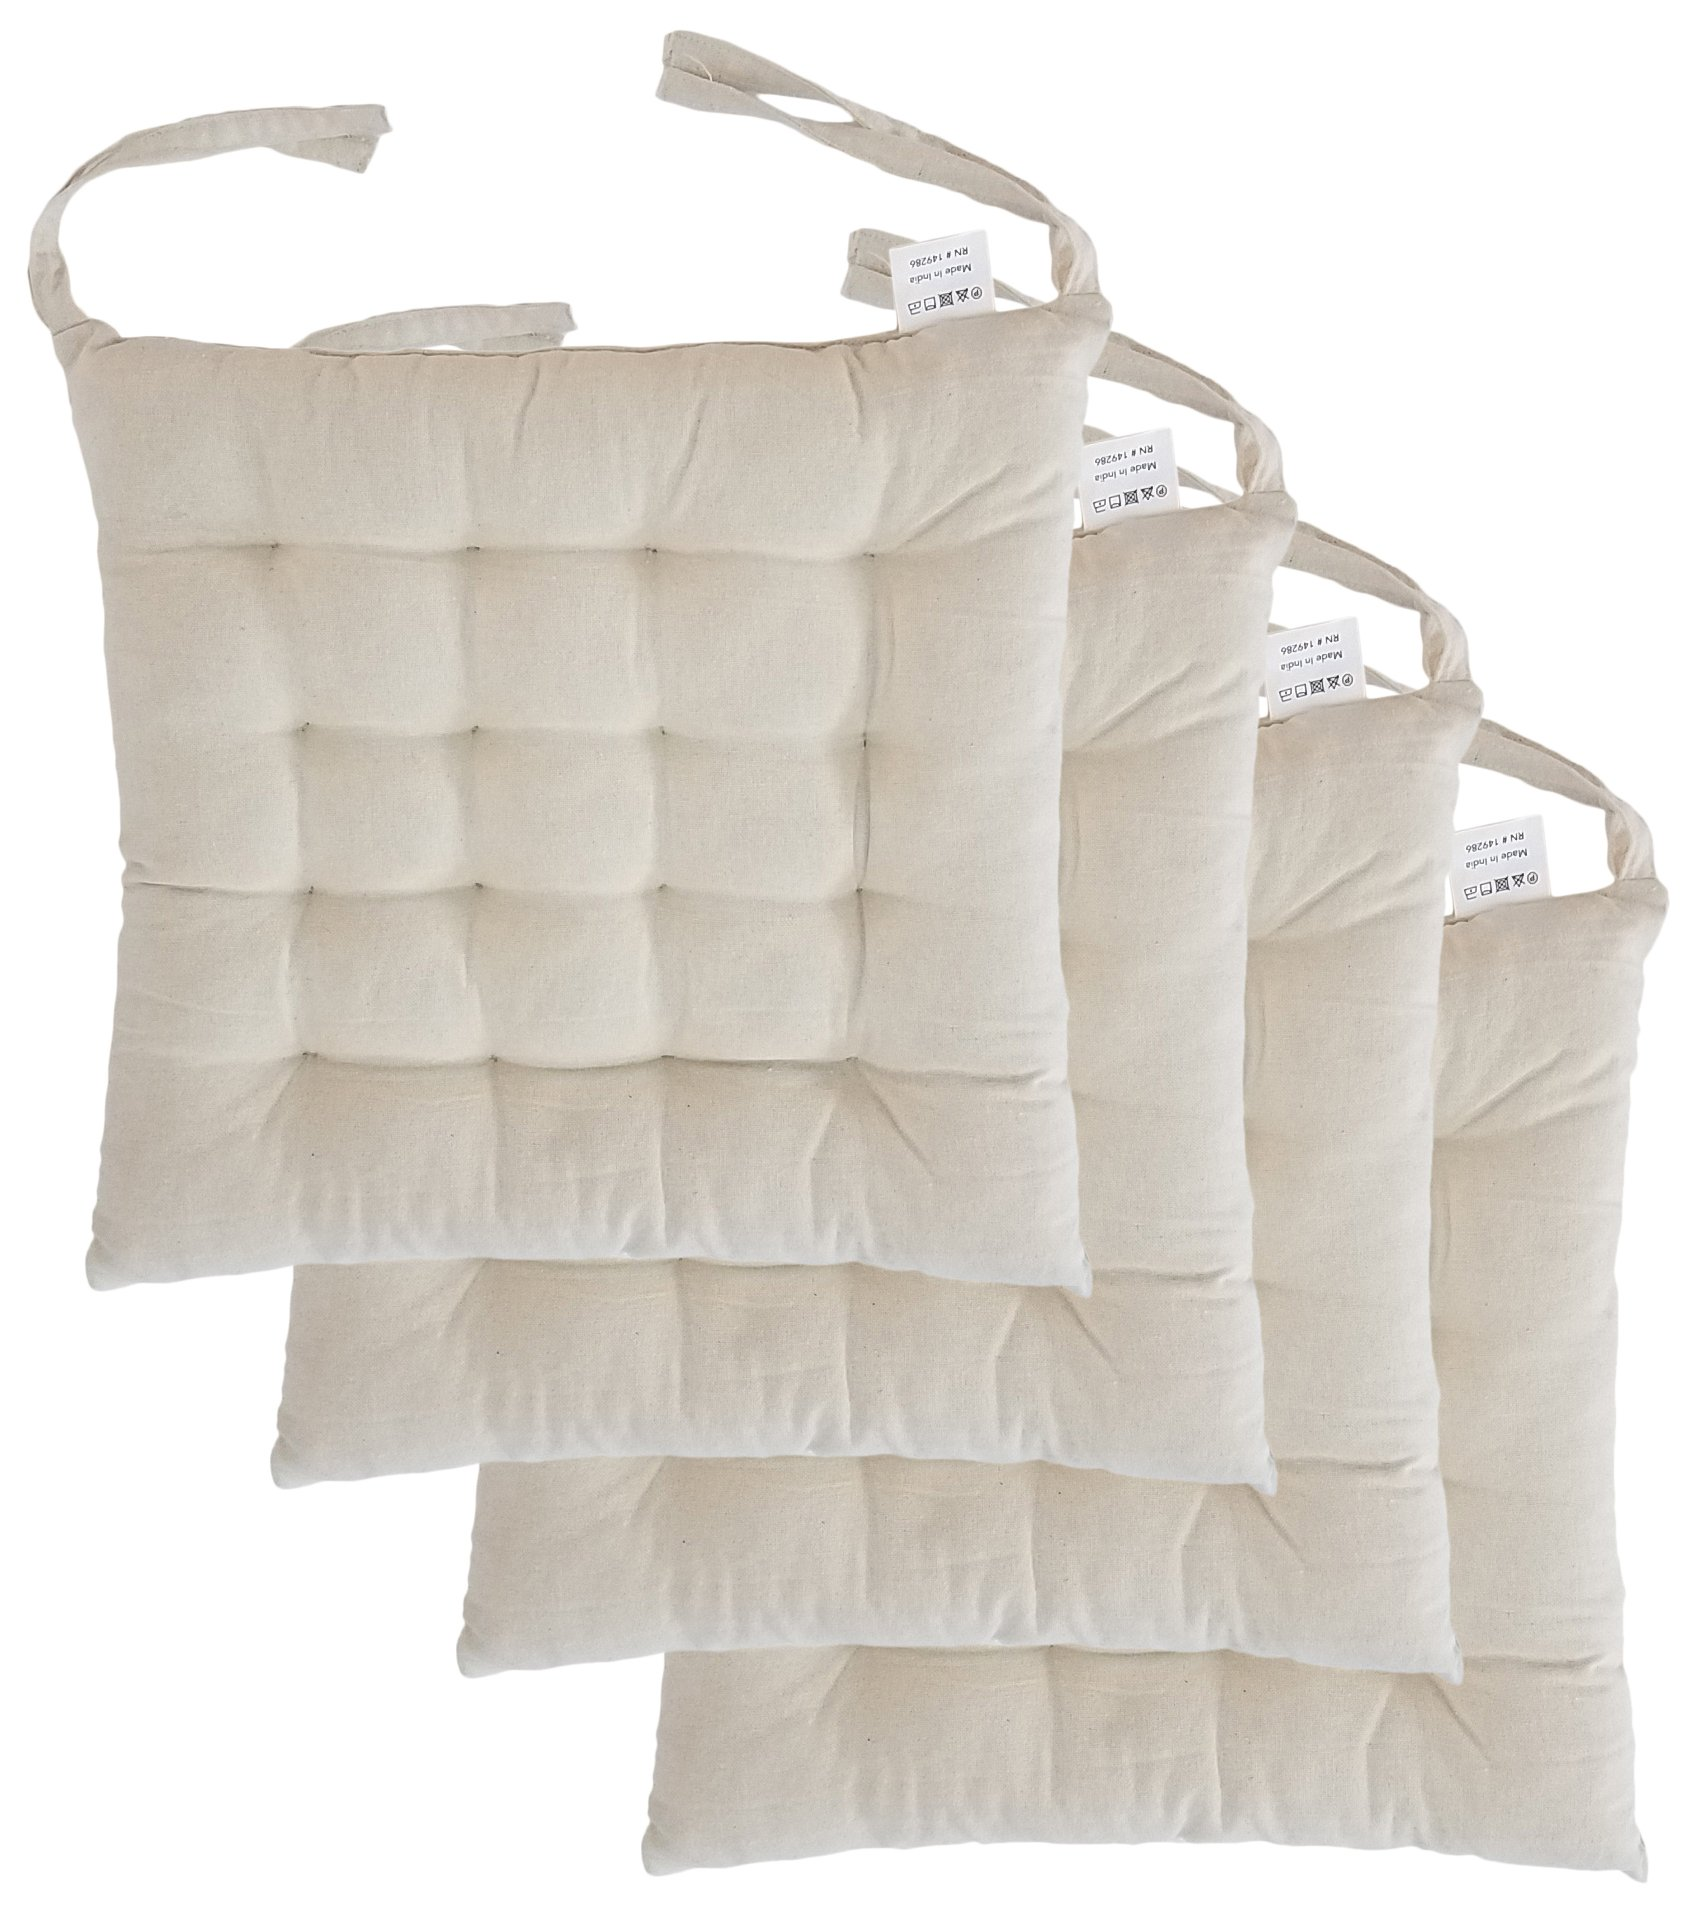 """Cottone 100% Cotton Chair Pads w/ Ties (Set of 4)   16"""" x 16"""" Square   Extra-Comfortable & Soft Seat Cushion   Ergonomic Pillow for Rocking, Dining, Patio, Camping, Kitchen Chairs & More (Light Beige)"""